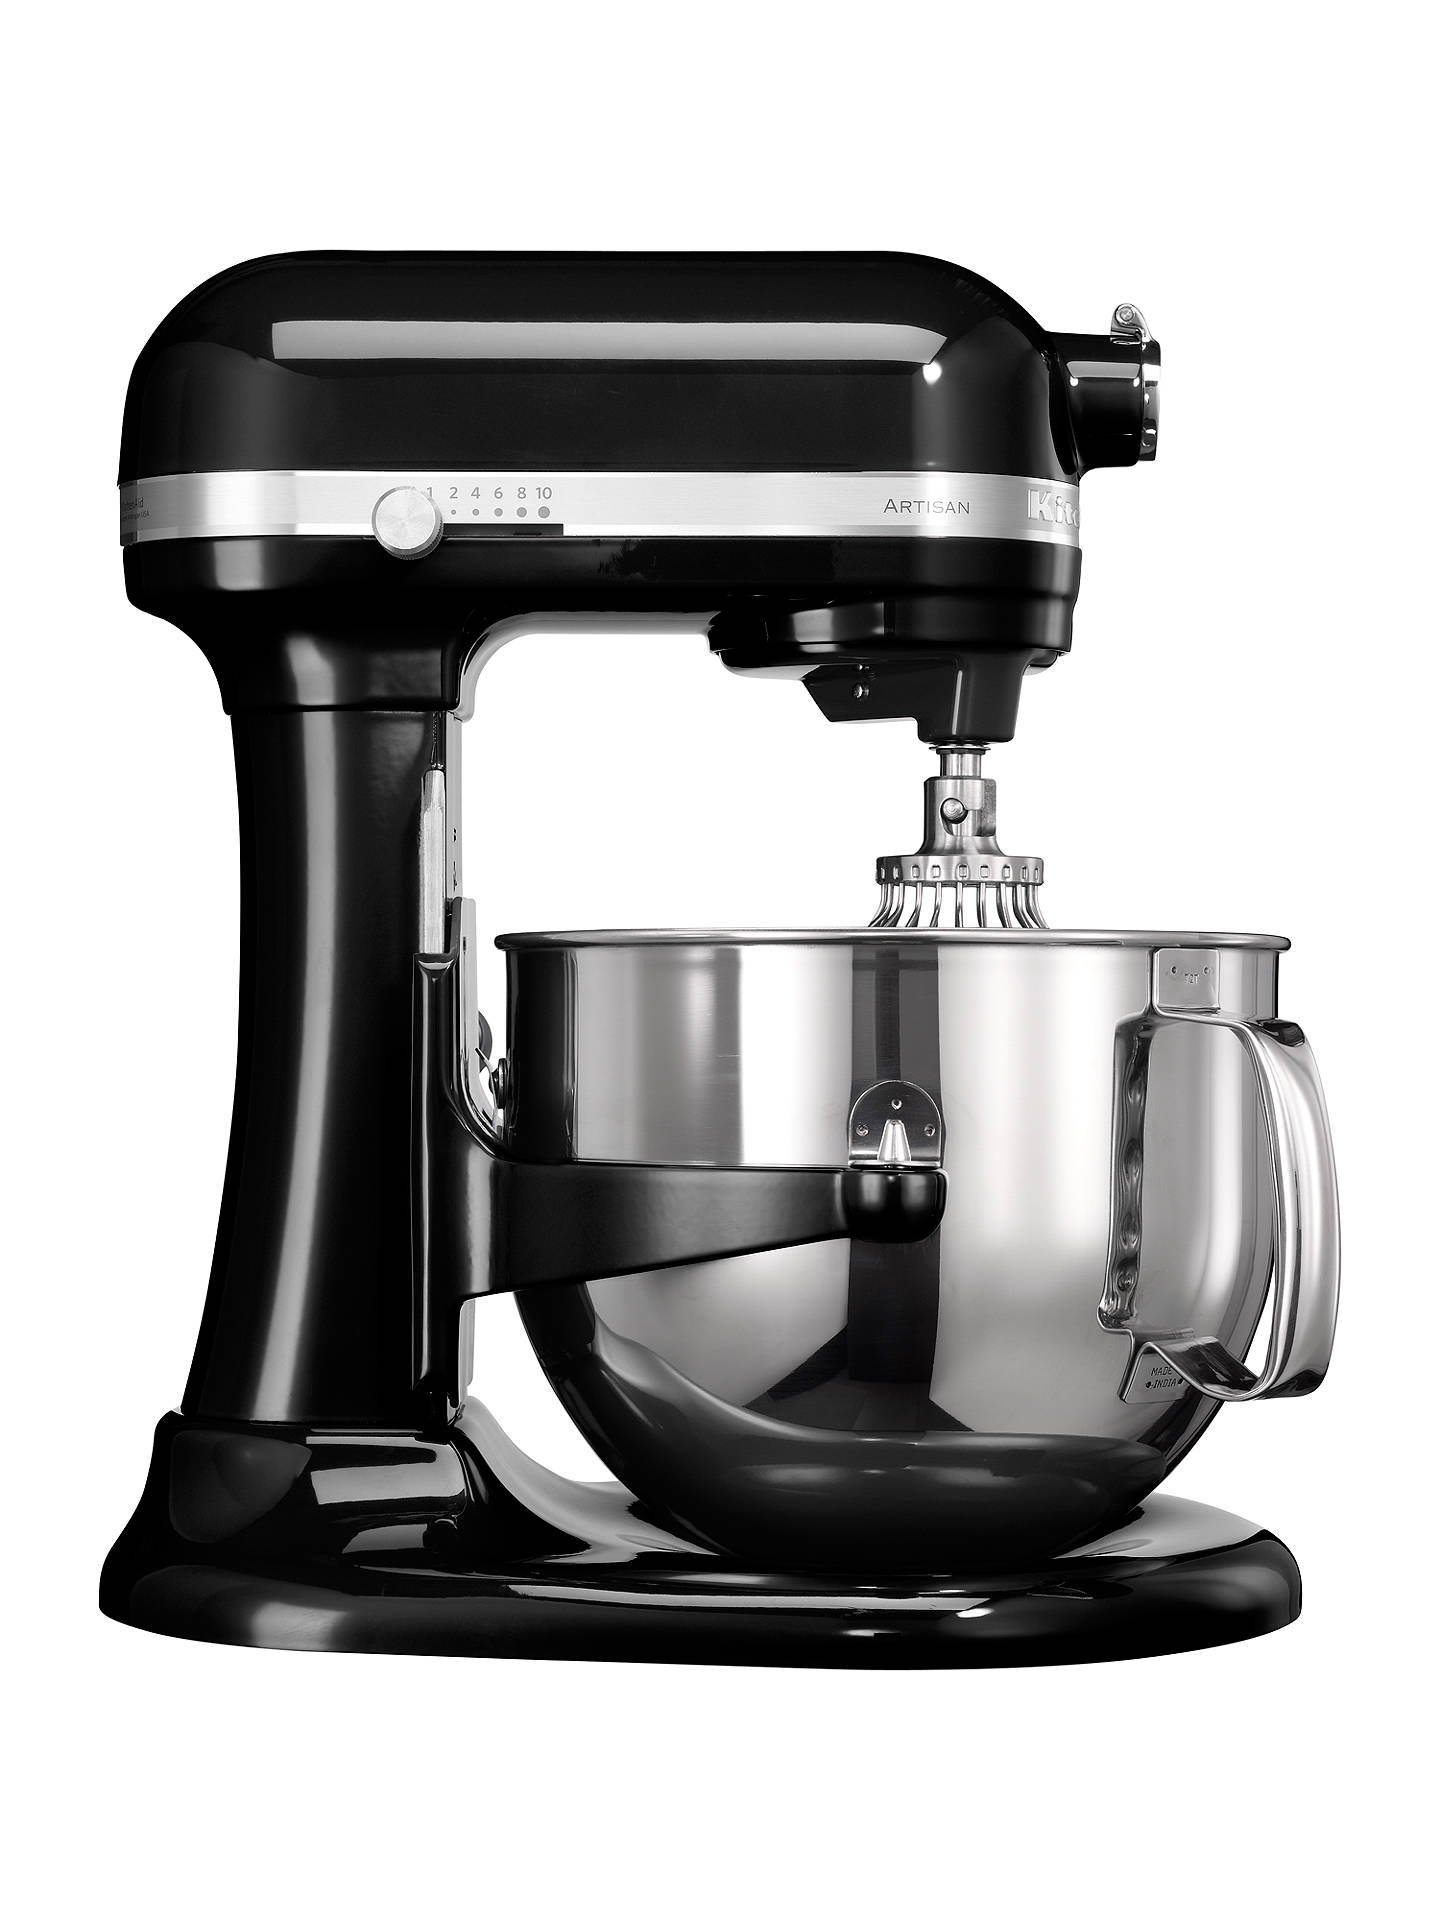 BuyKitchenAid 6.9L Artisan Stand Mixer, Onyx Black Online at johnlewis.com